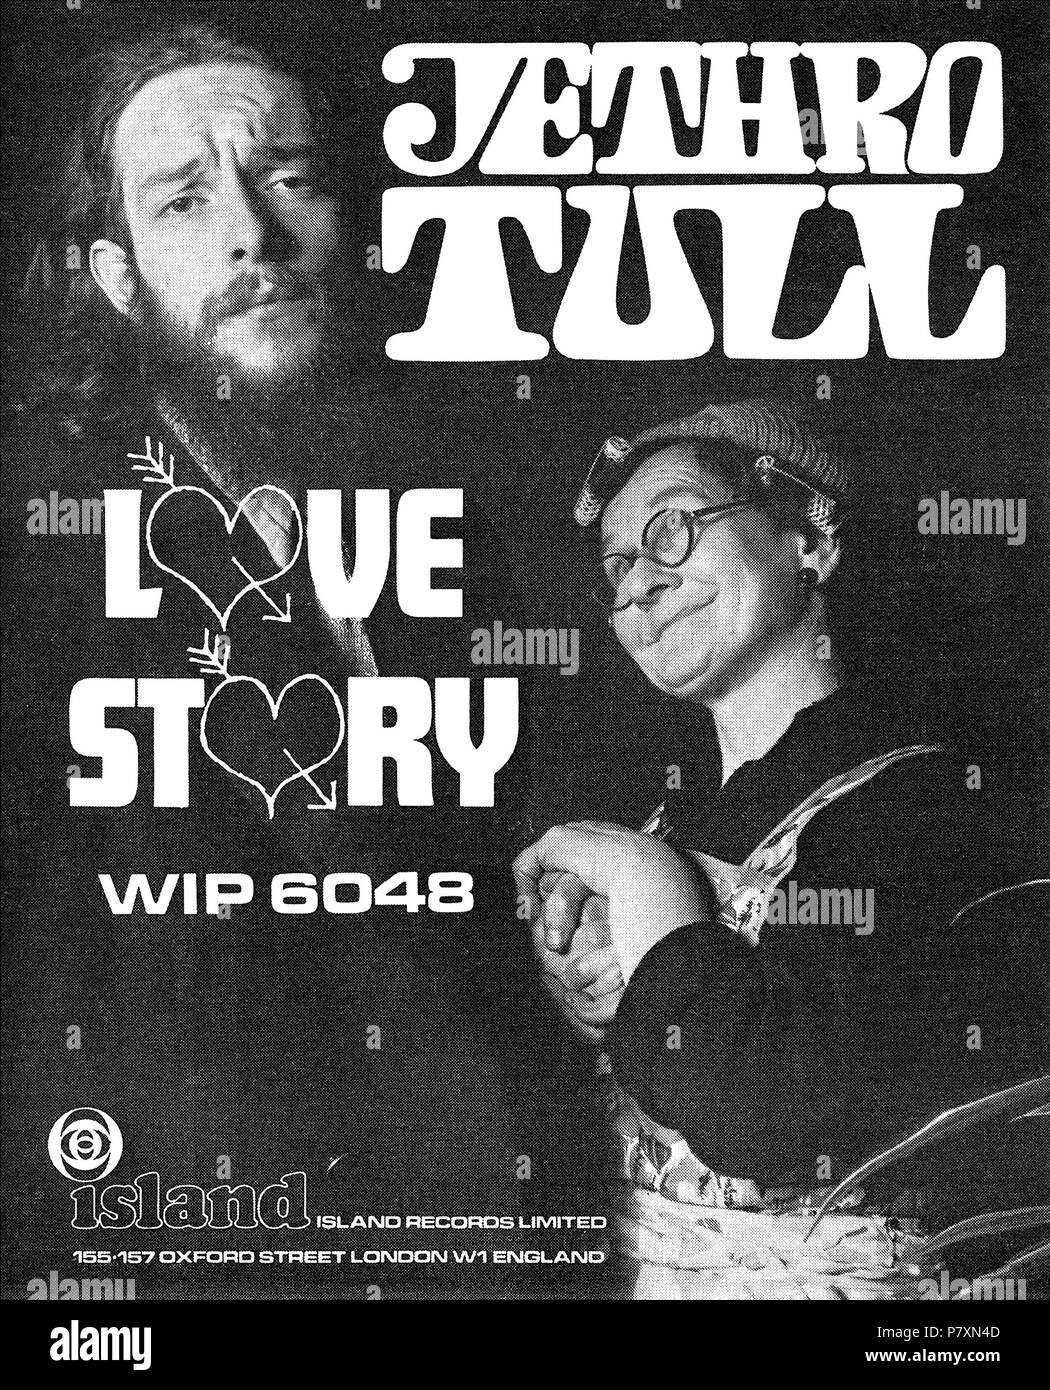 1968 British advertisement for the 7' 45 rpm single Love Story by Jethro Tull on Island Records, showing Ian Anderson. - Stock Image